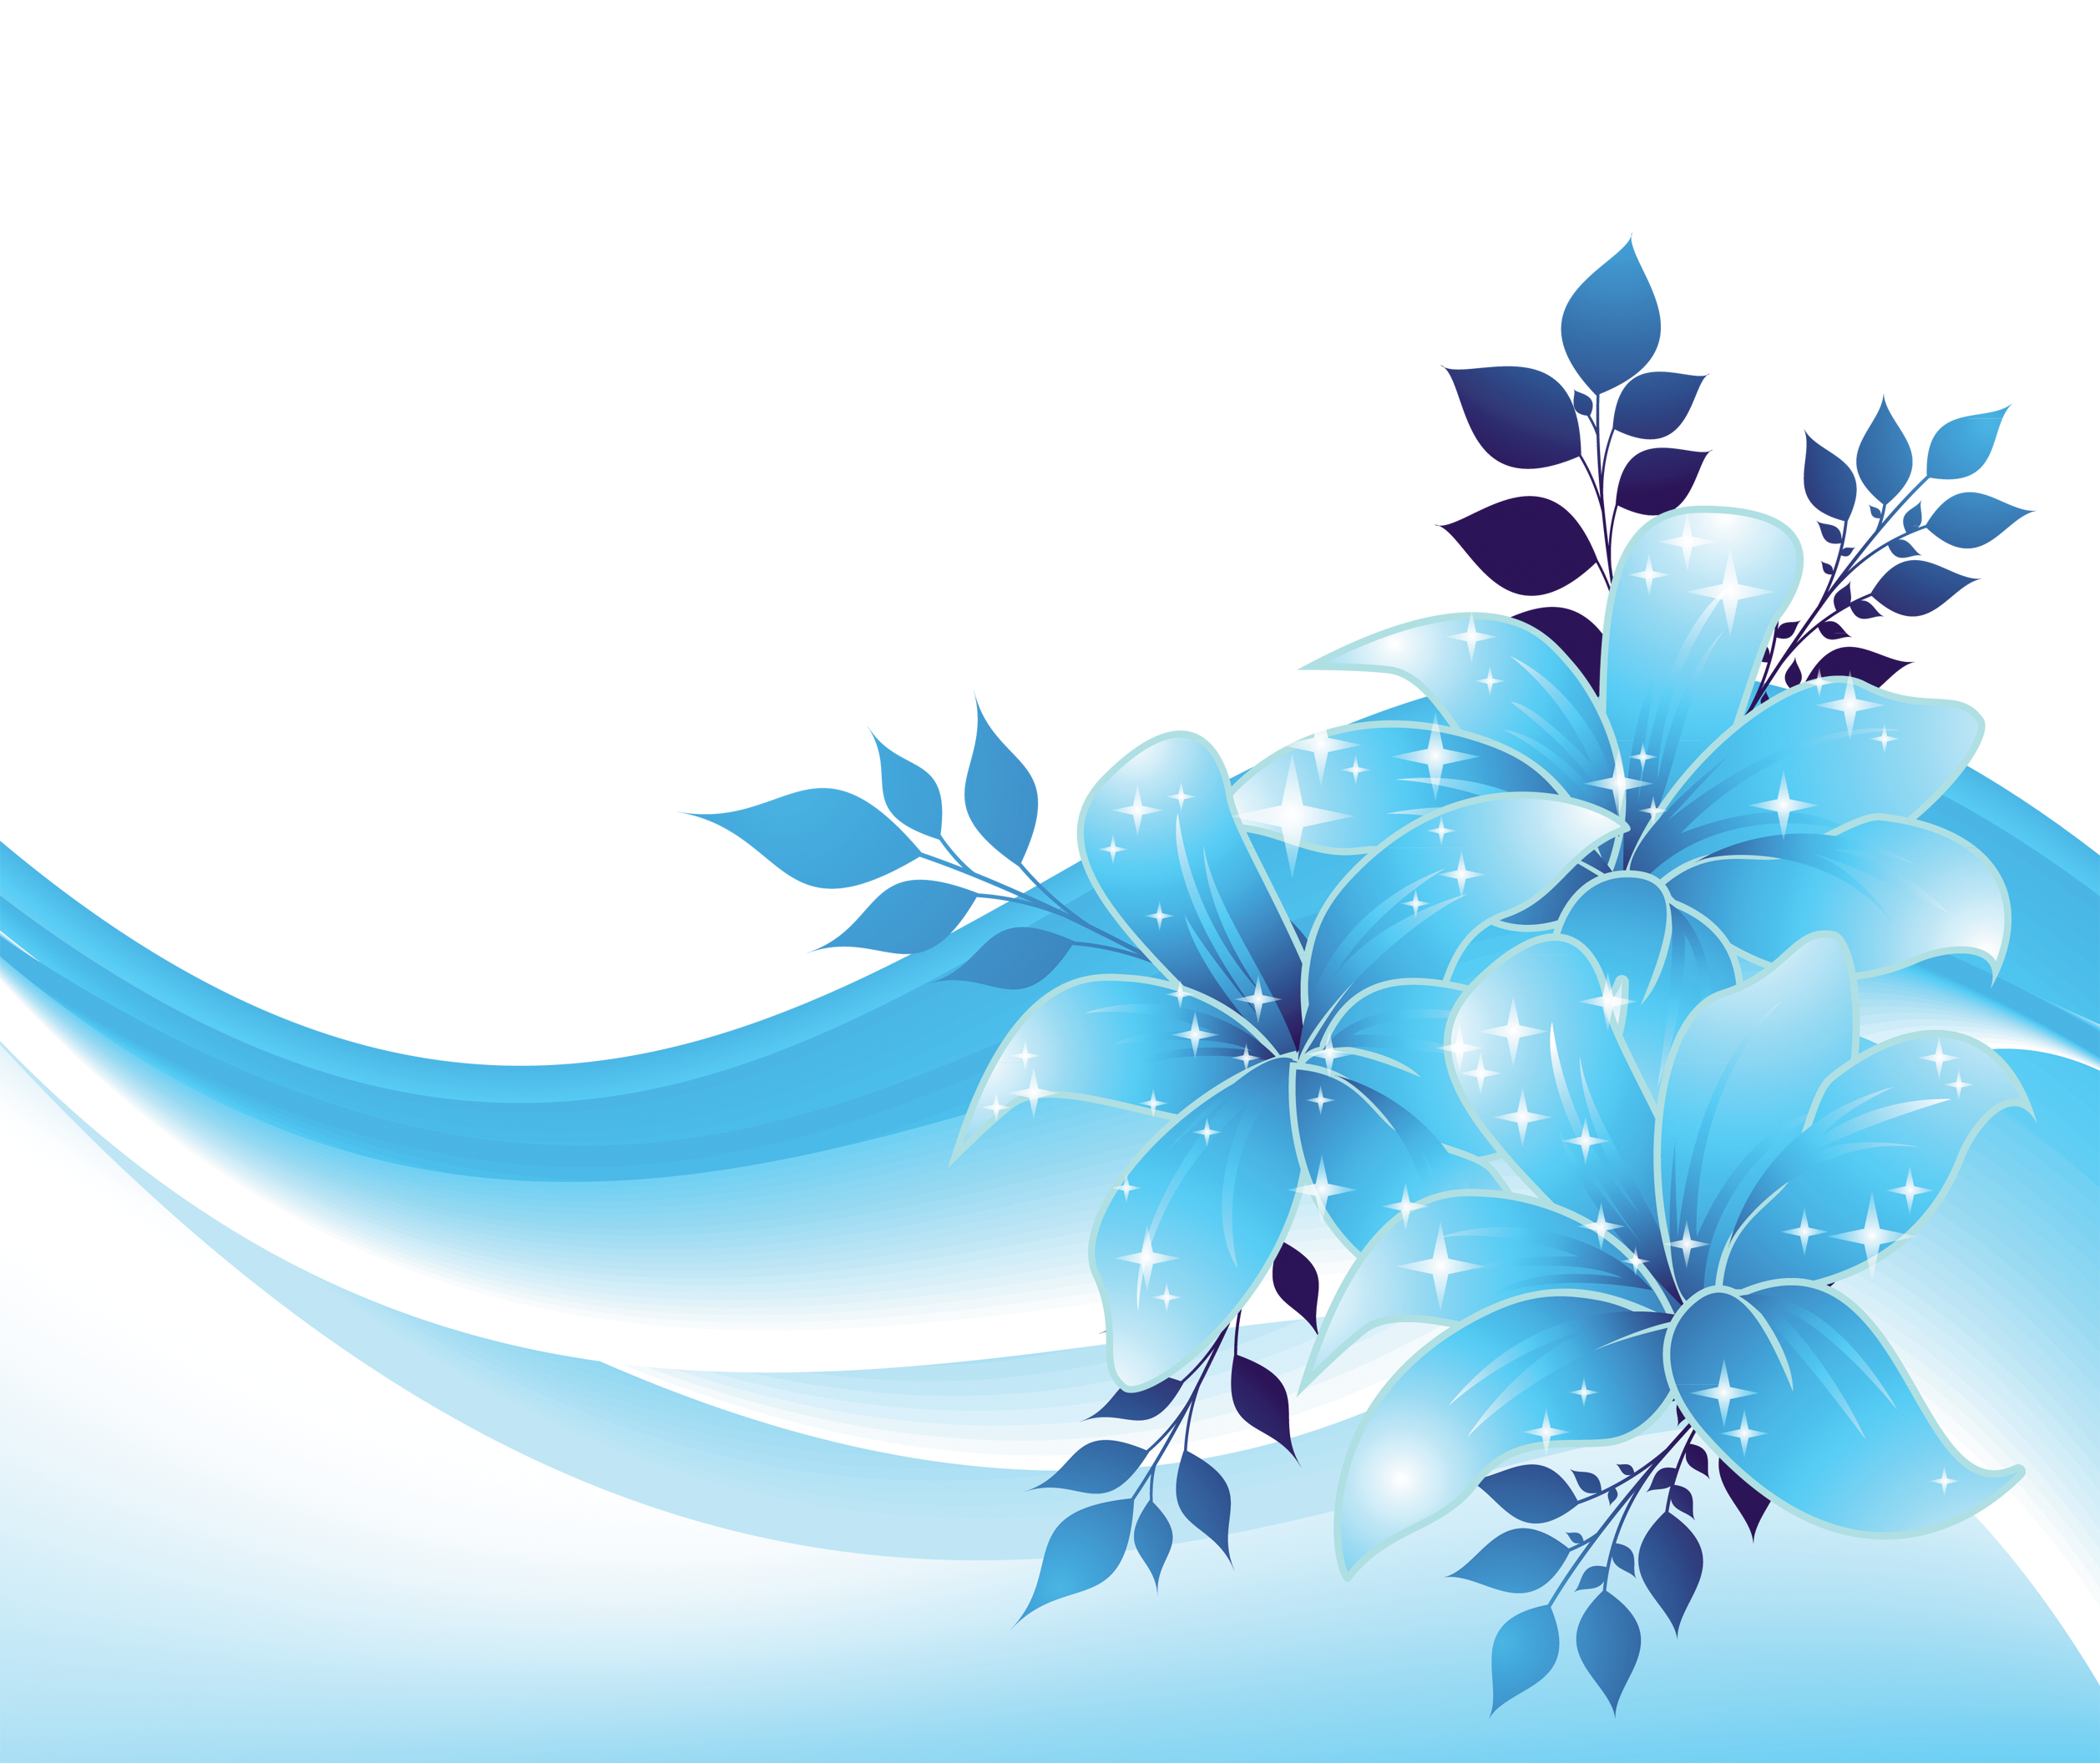 Blue flower border png. Decoration with flowers transparent